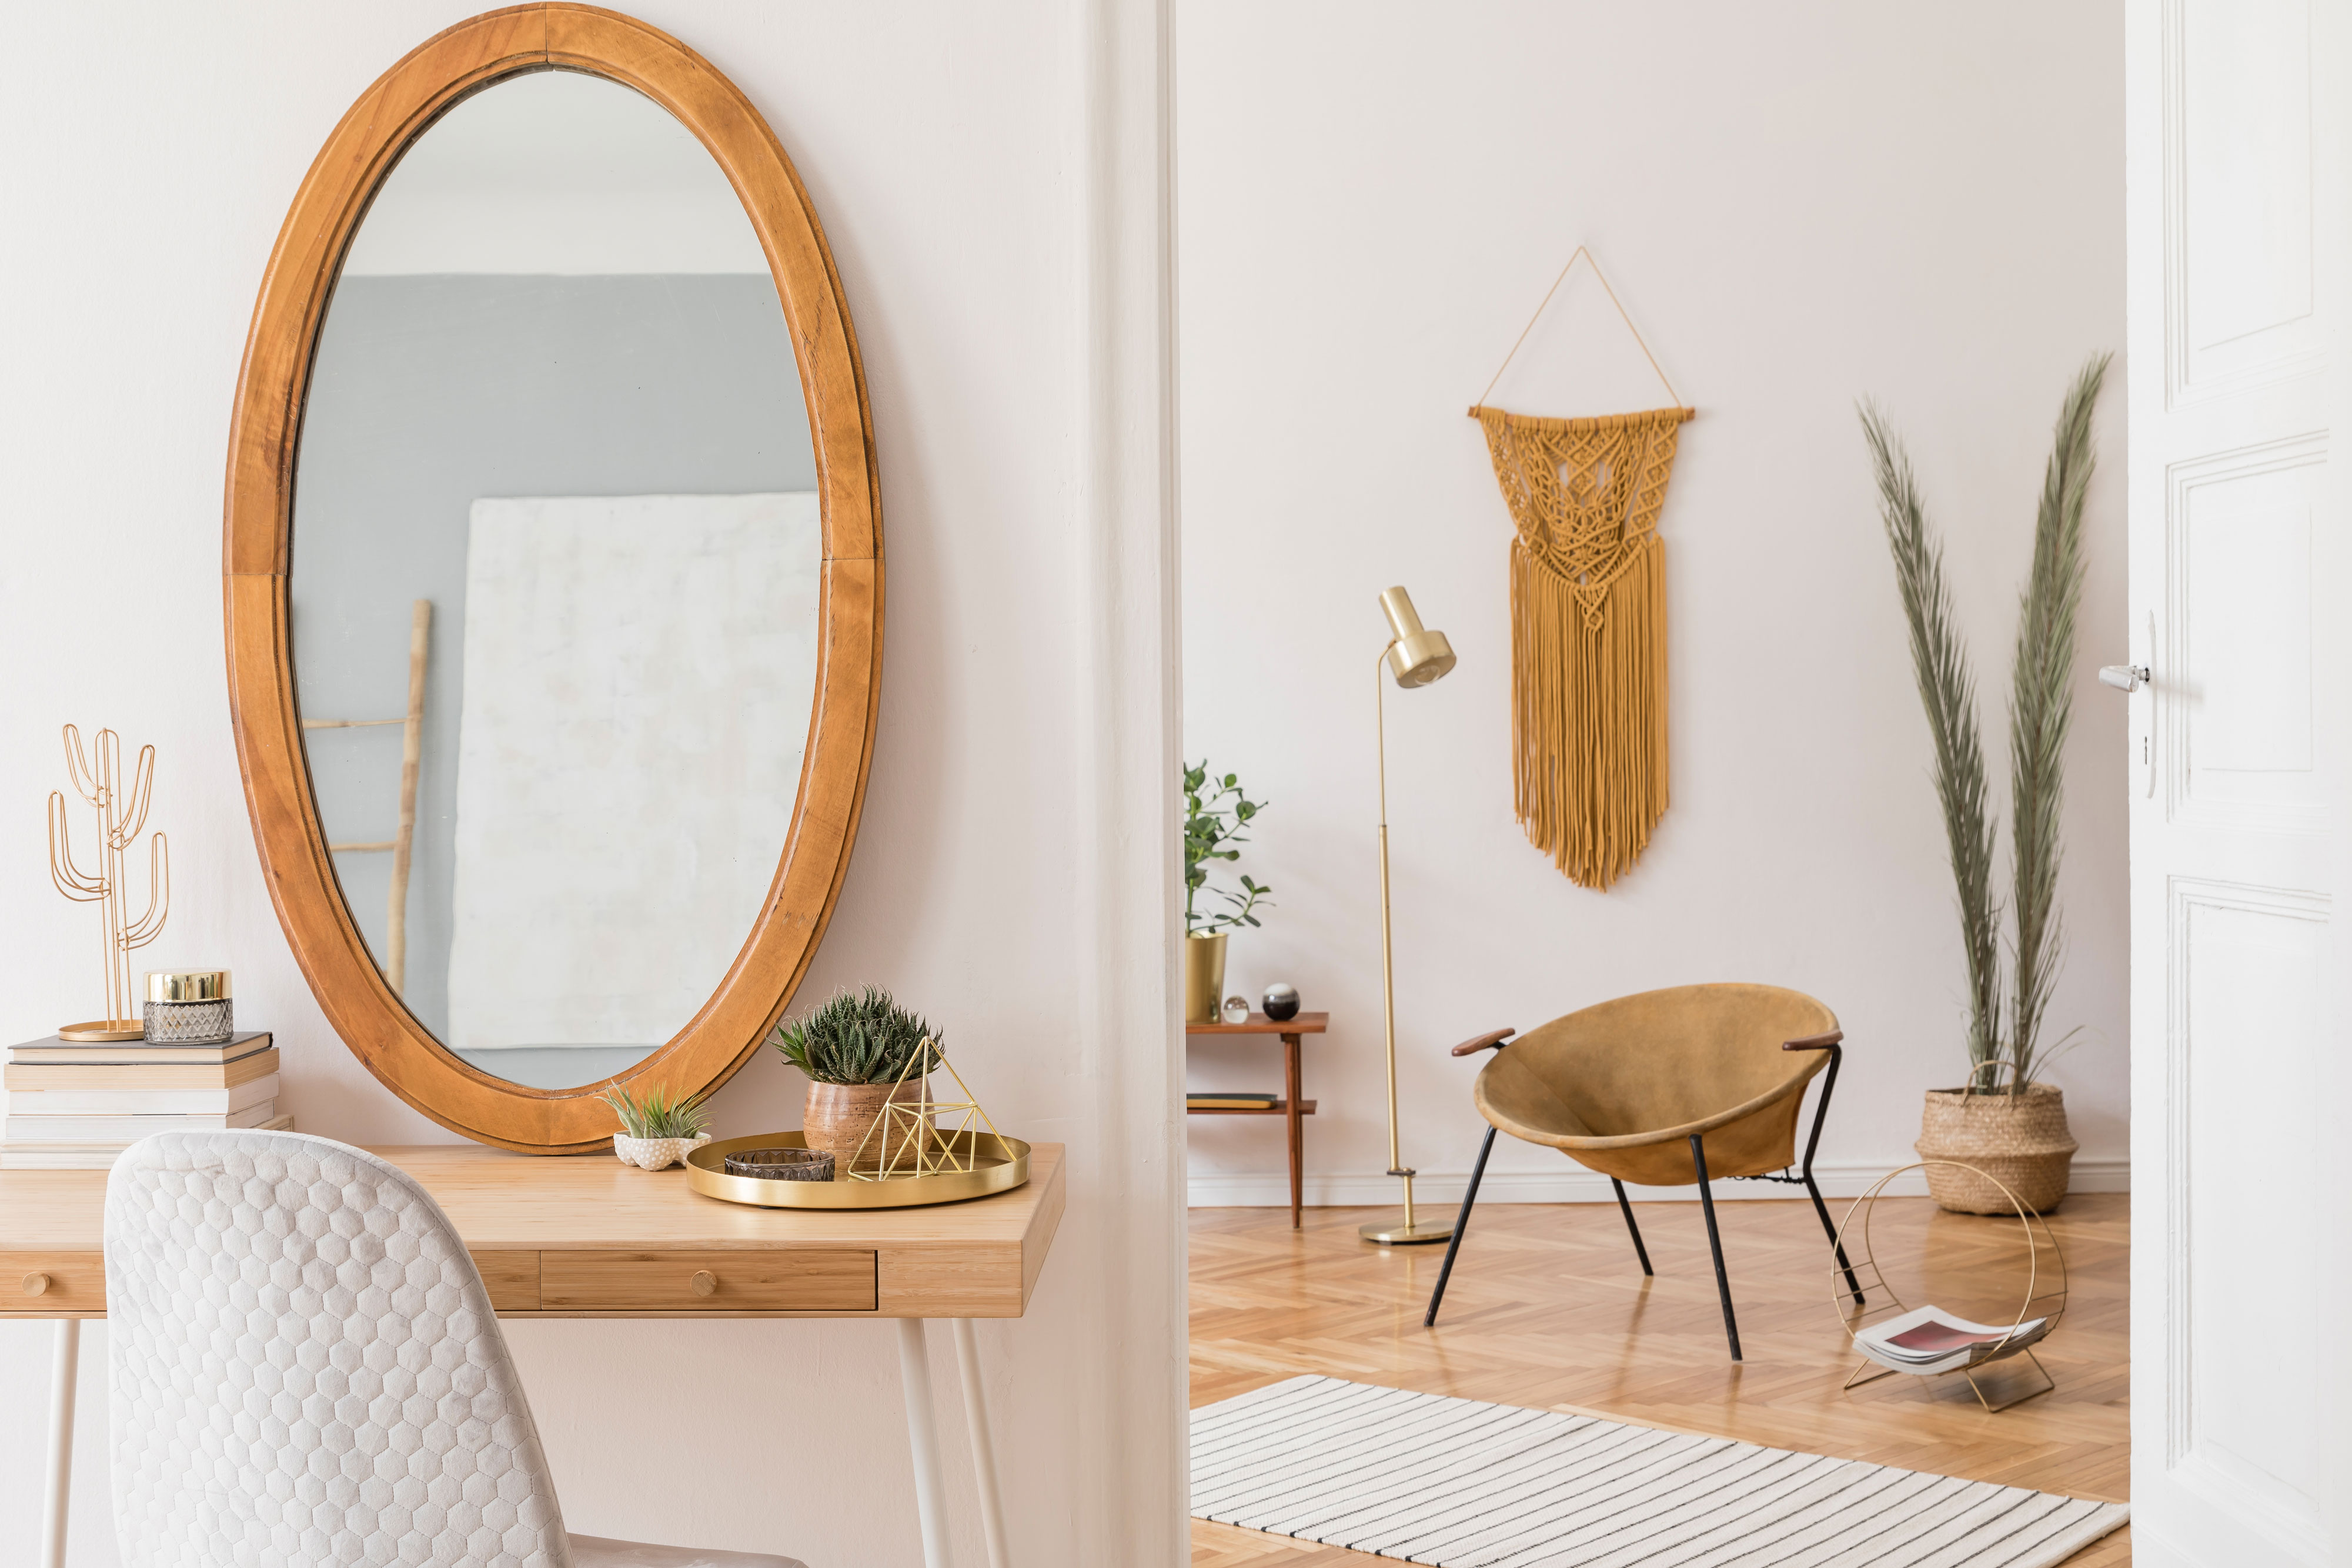 Oval mirror with wooden frame on table